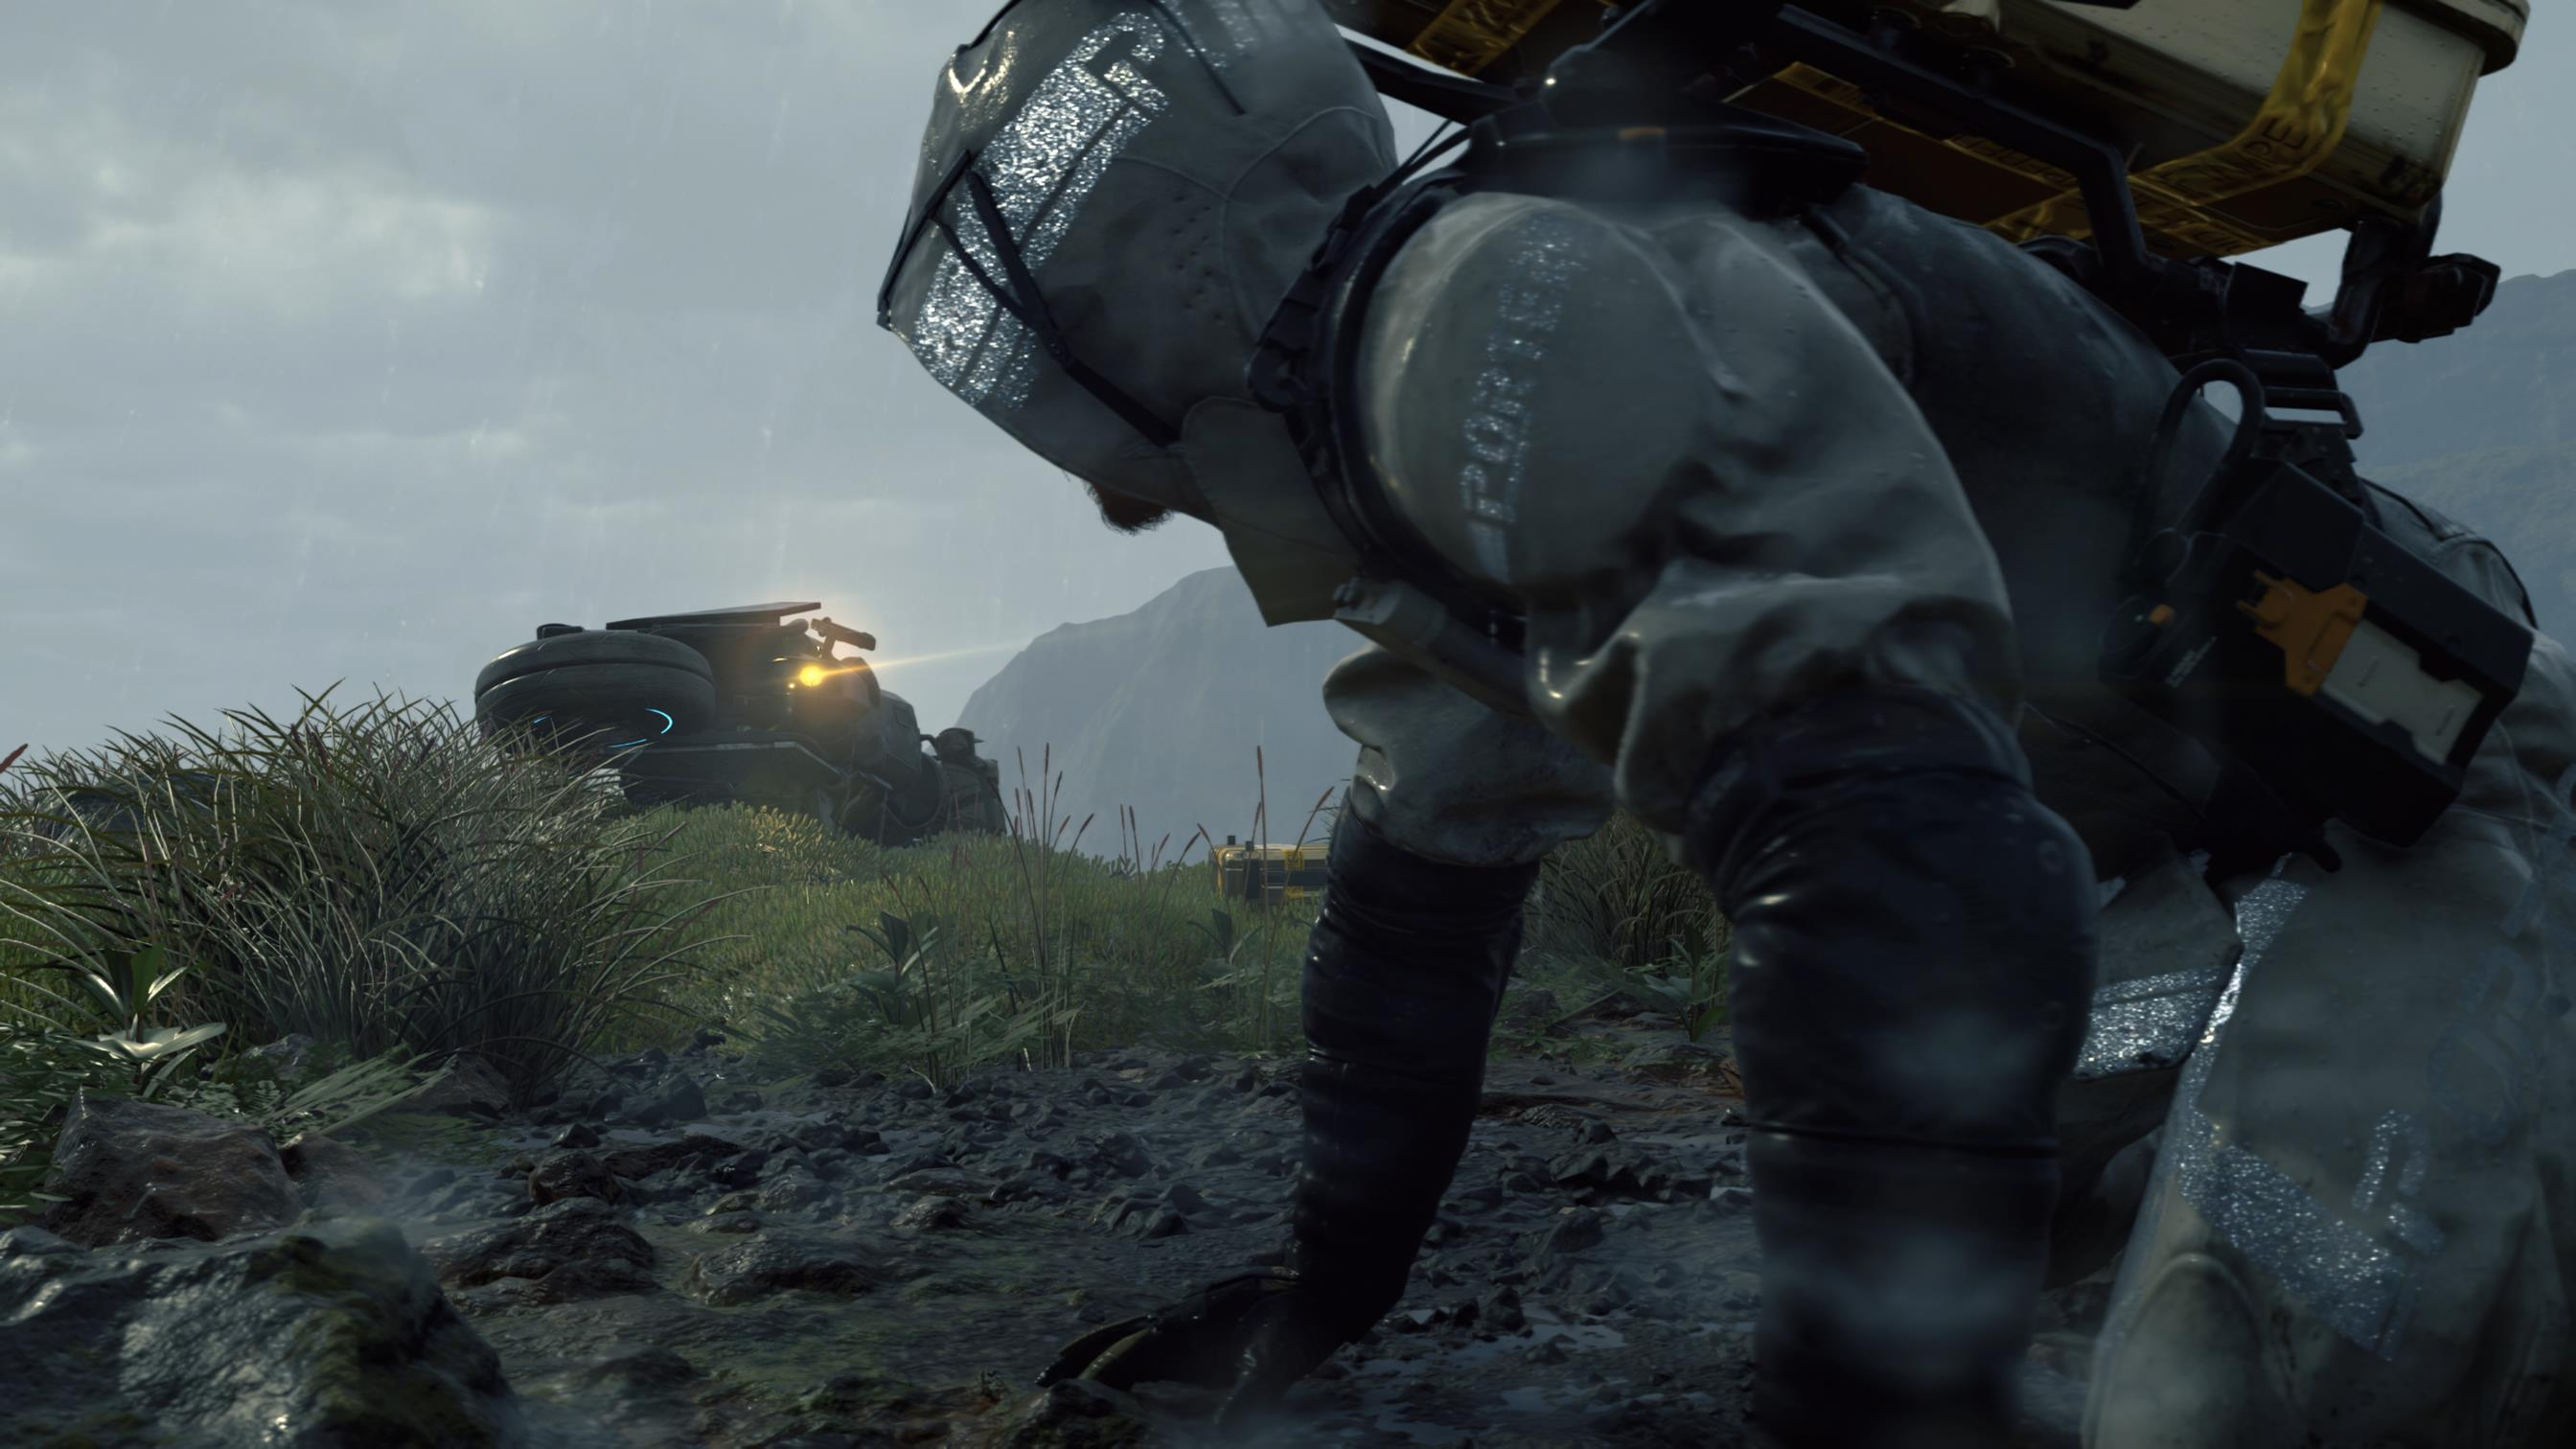 Kojima productions teases some Death Stranding news for May 29